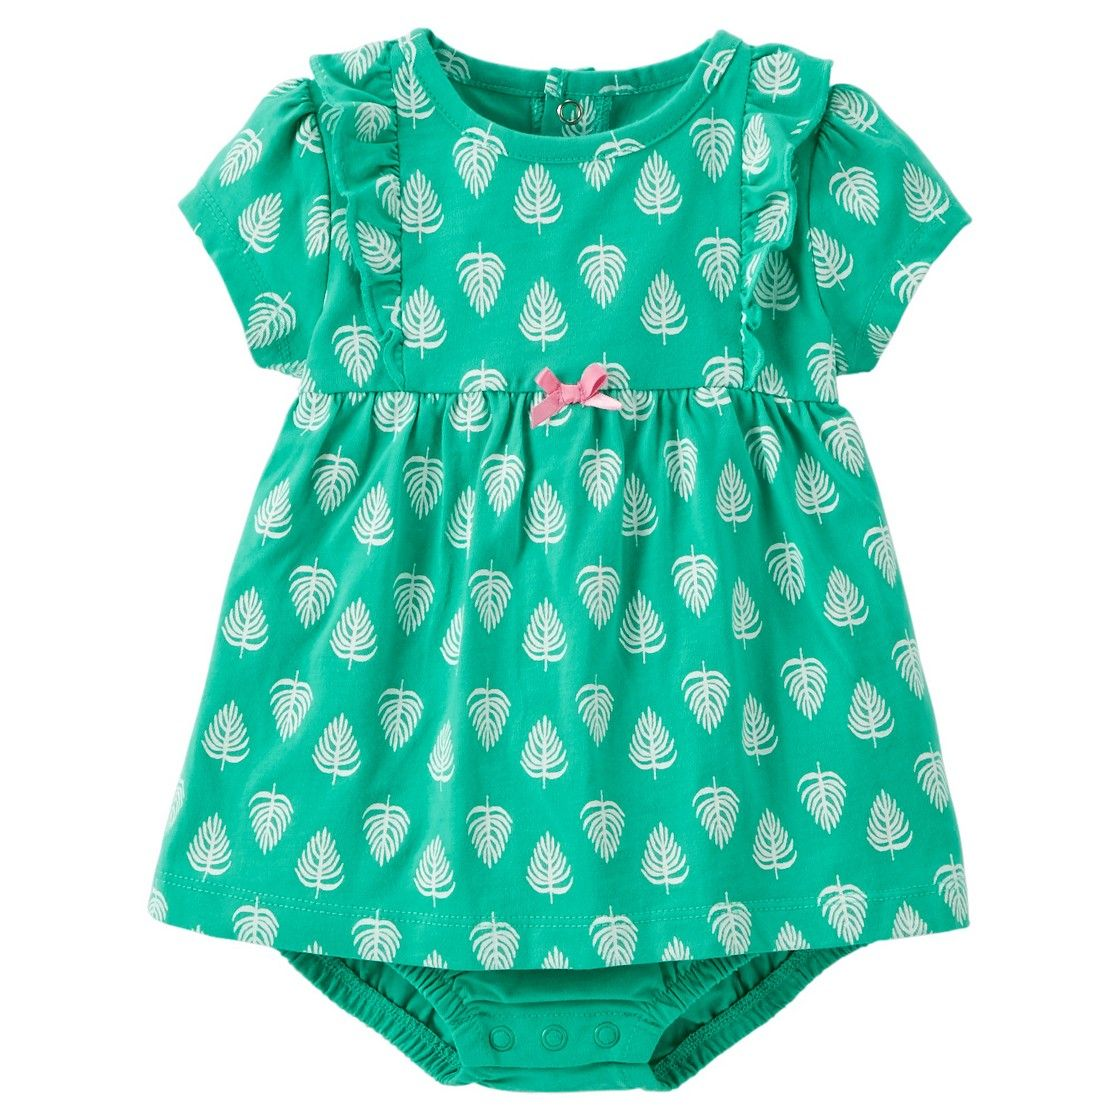 c26bccae1 Just One You Made by Carter s  Newborn Girls  Leaves Bodysuit ...